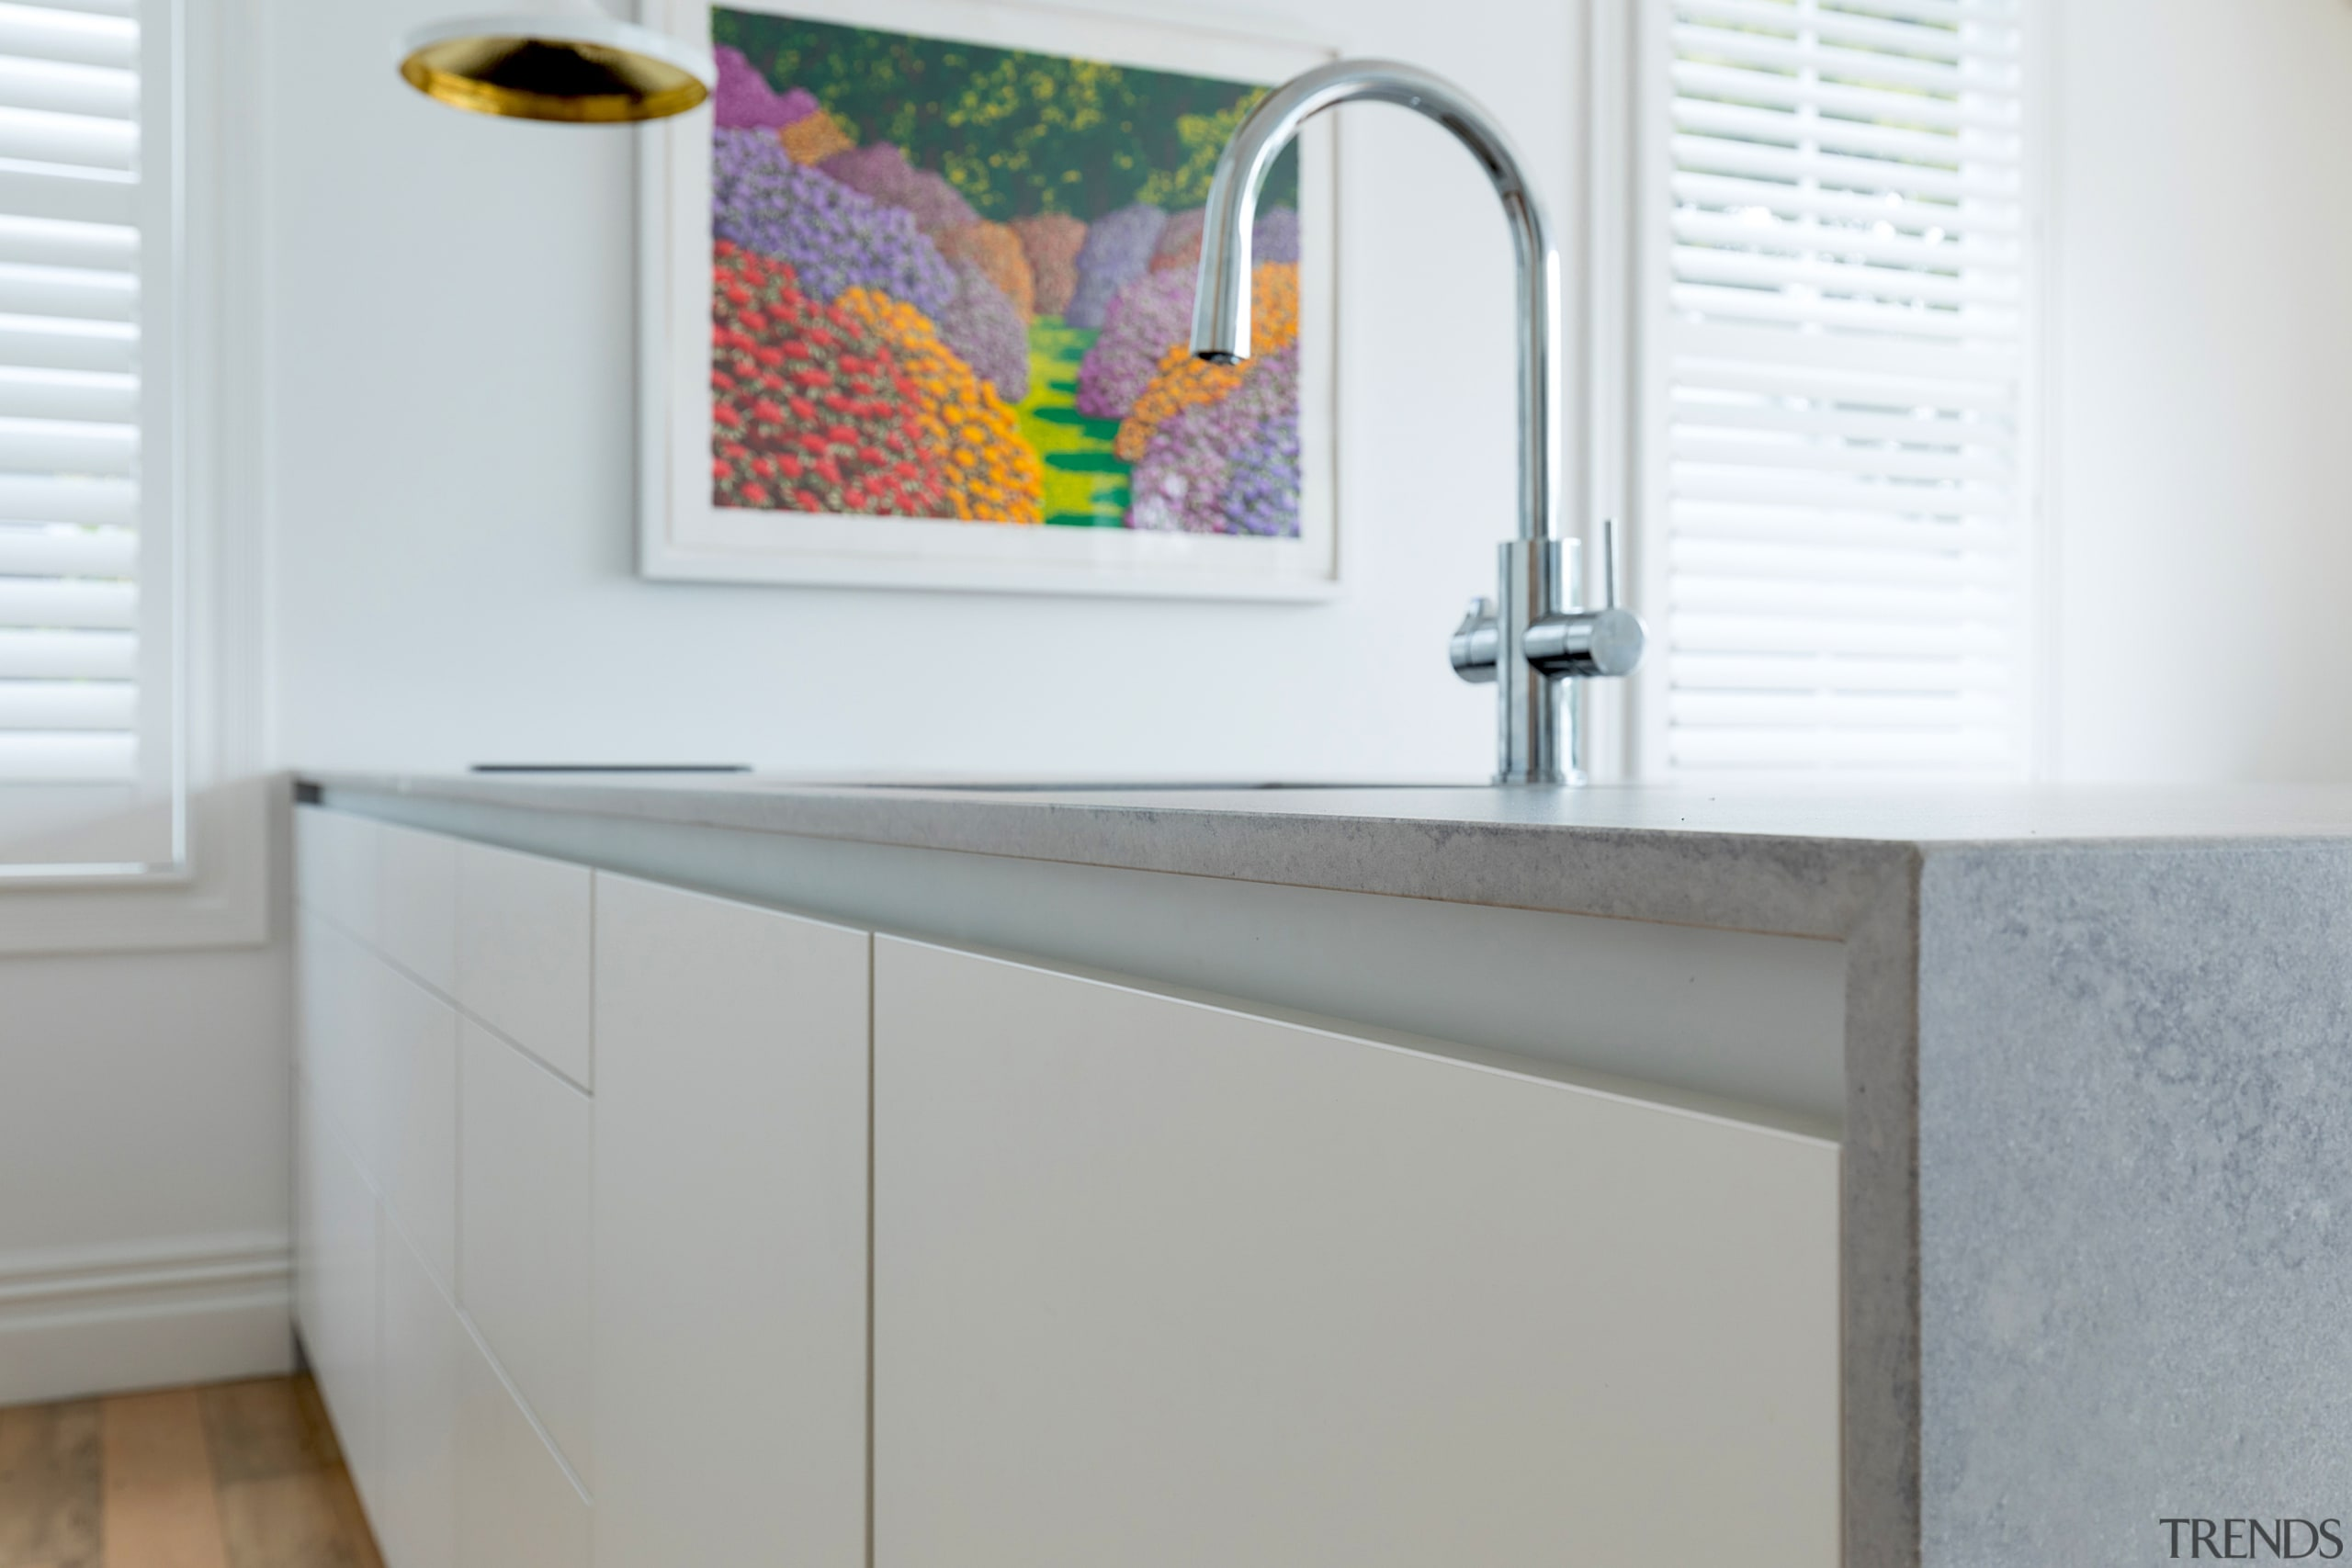 Slender, waterfall-end benchtops add to the kitchen's contemporary gray, white